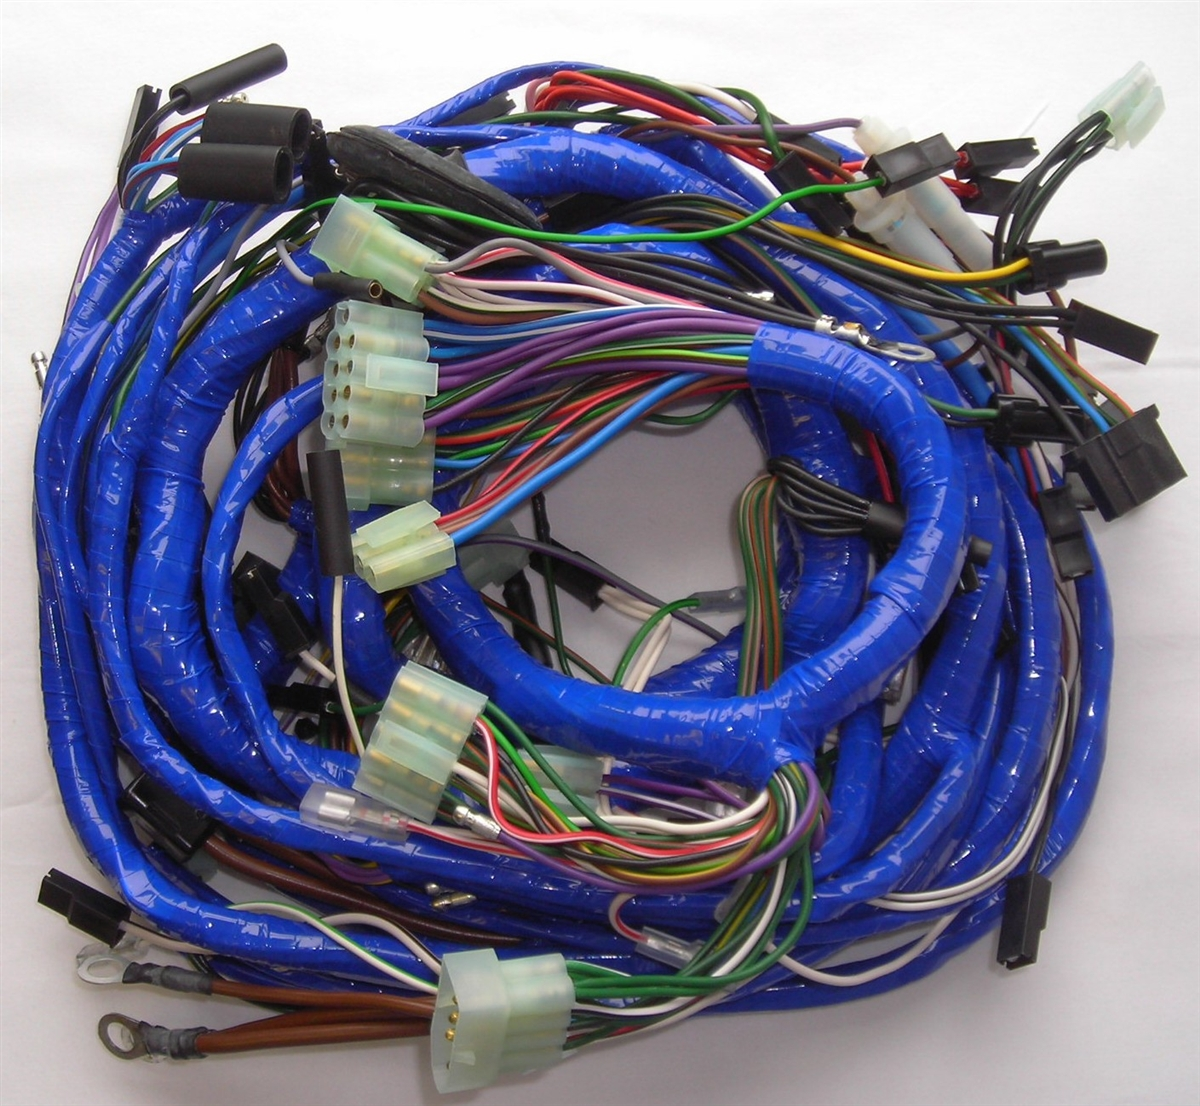 1978 Mgb Wiring Harness | Wiring Diagram Mgb Wiring Harness Routing on